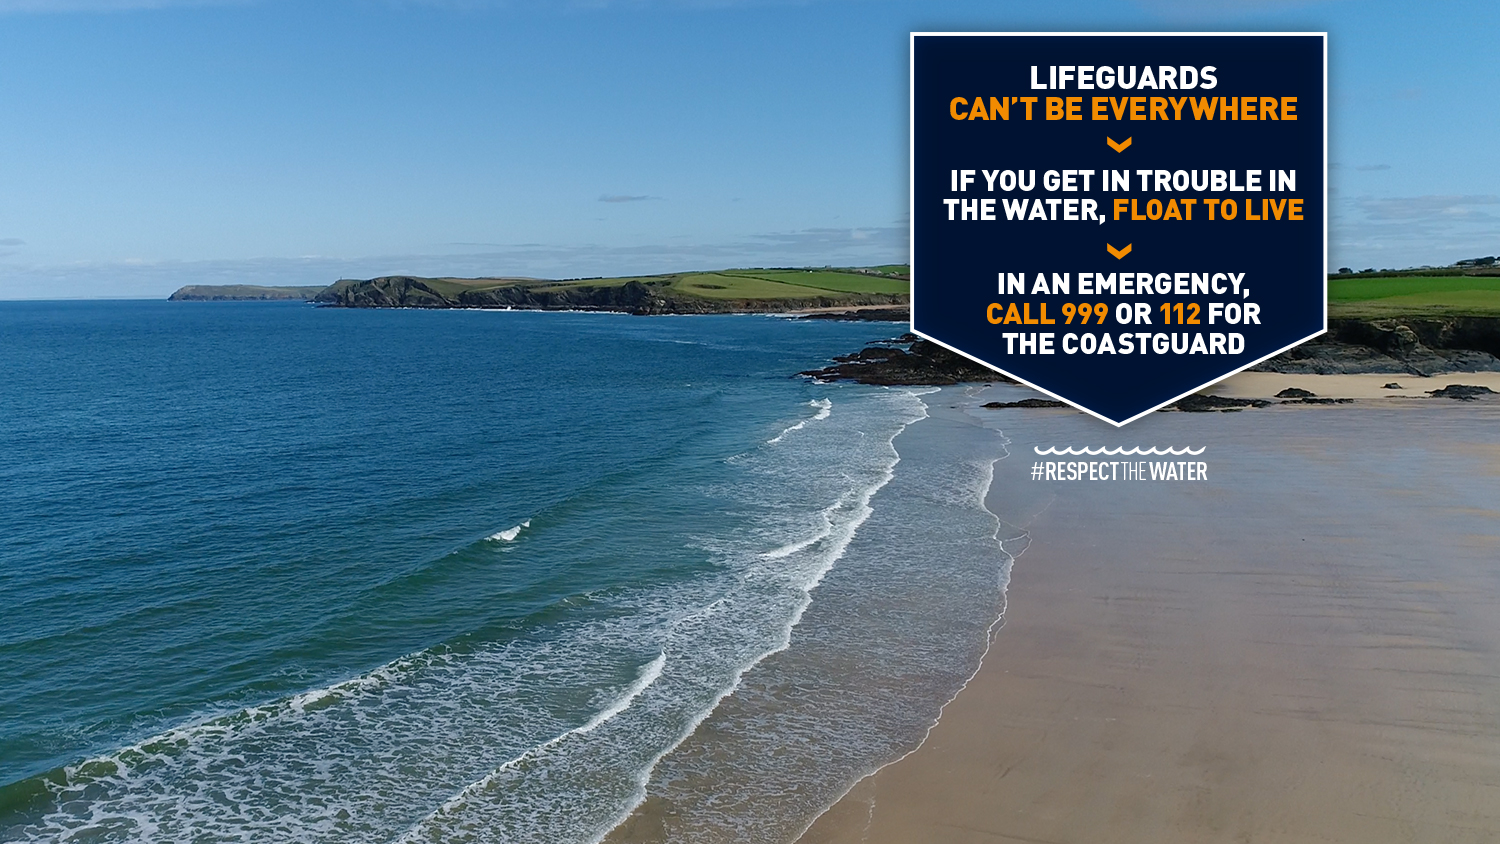 Beach on a bright day with fields in distance. Text overlay: Lifeguards can't be everywhere. If you get in trouble in the water, float to live. In an emergency call 999 or 112 for the Coastguard. #RespectTheWater